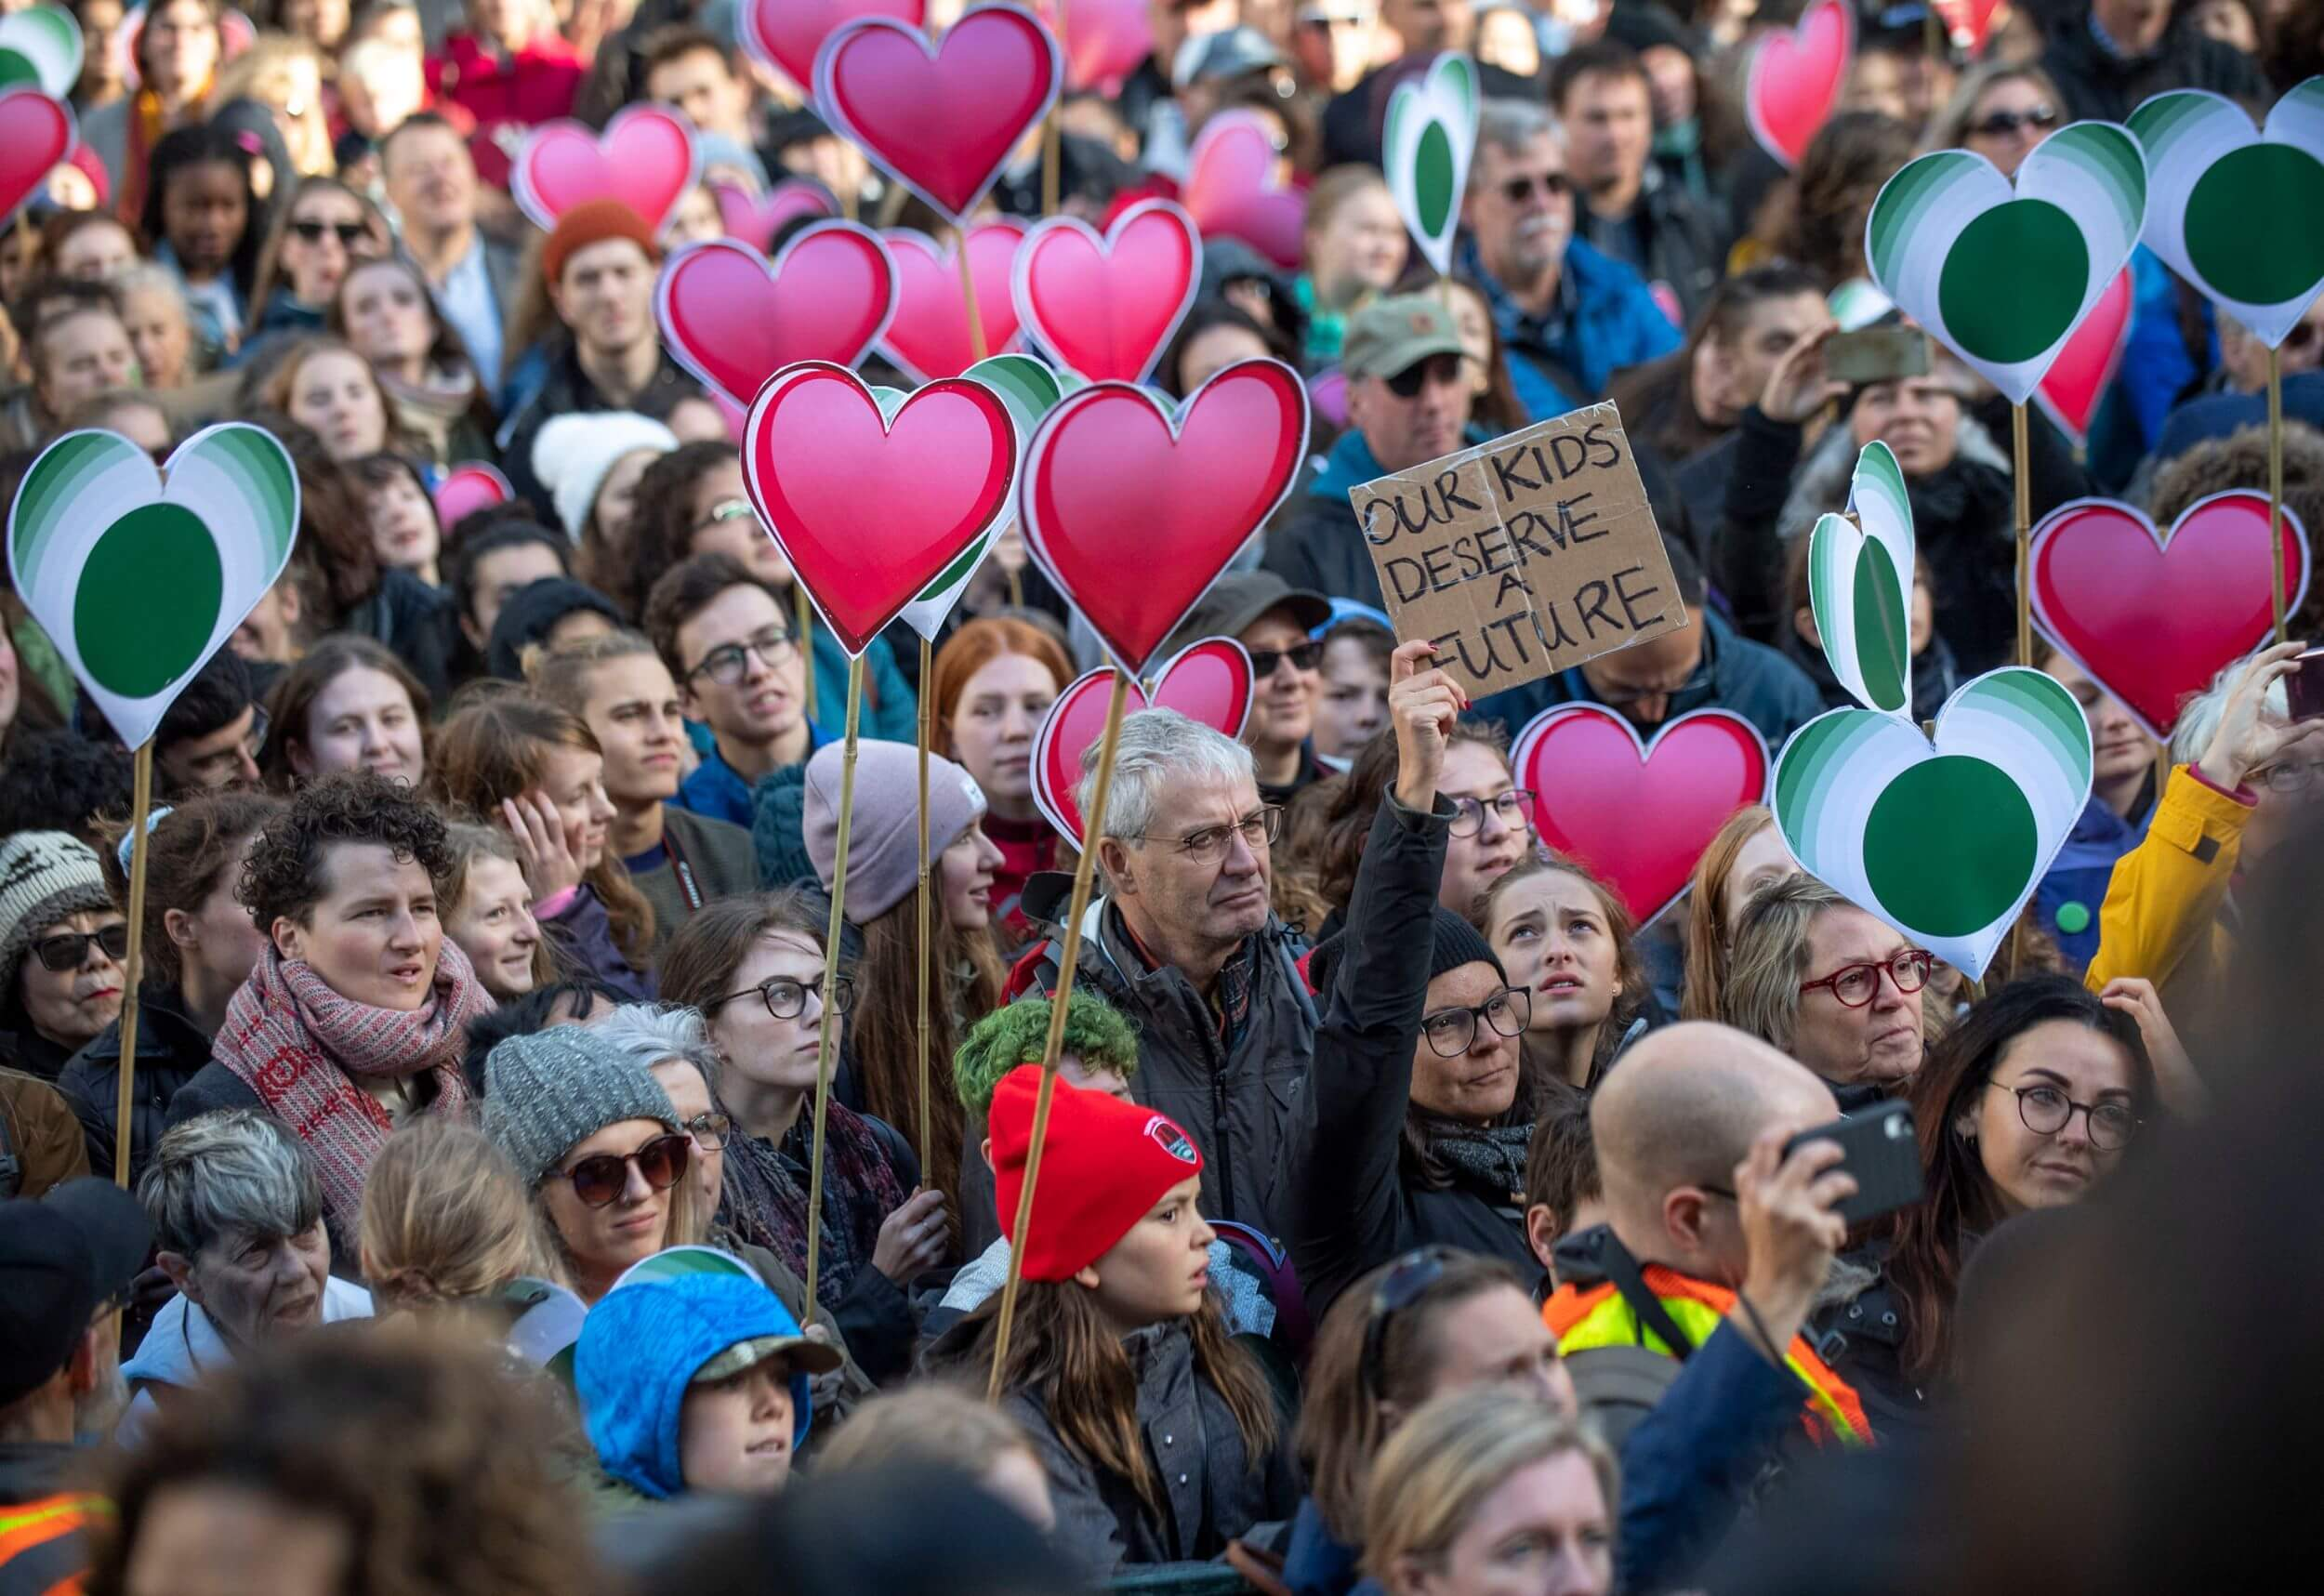 """The faces of a crowd of protestors. All are looking at something off-camera. Many hold paper pink hearts on sticks. One holds a cardboard sign that reads """"Our kids deserve a future."""""""